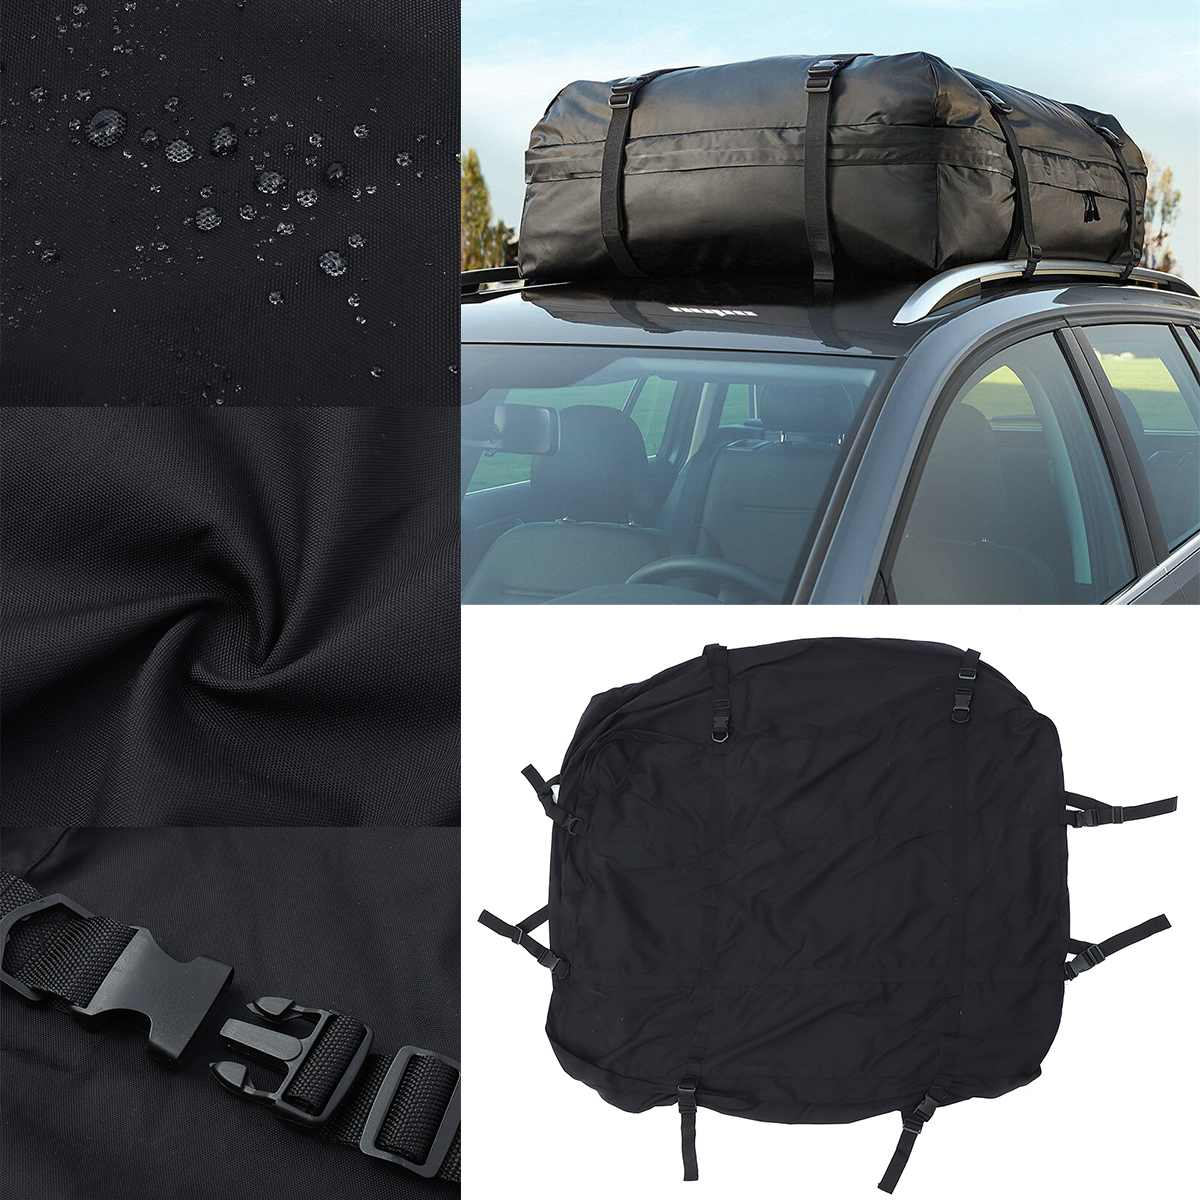 80x80x40cm Waterproof  Universal Car Roof Top Rack Bag Travel Carrier Cargo Luggage Storage Universal  For Cars Styling